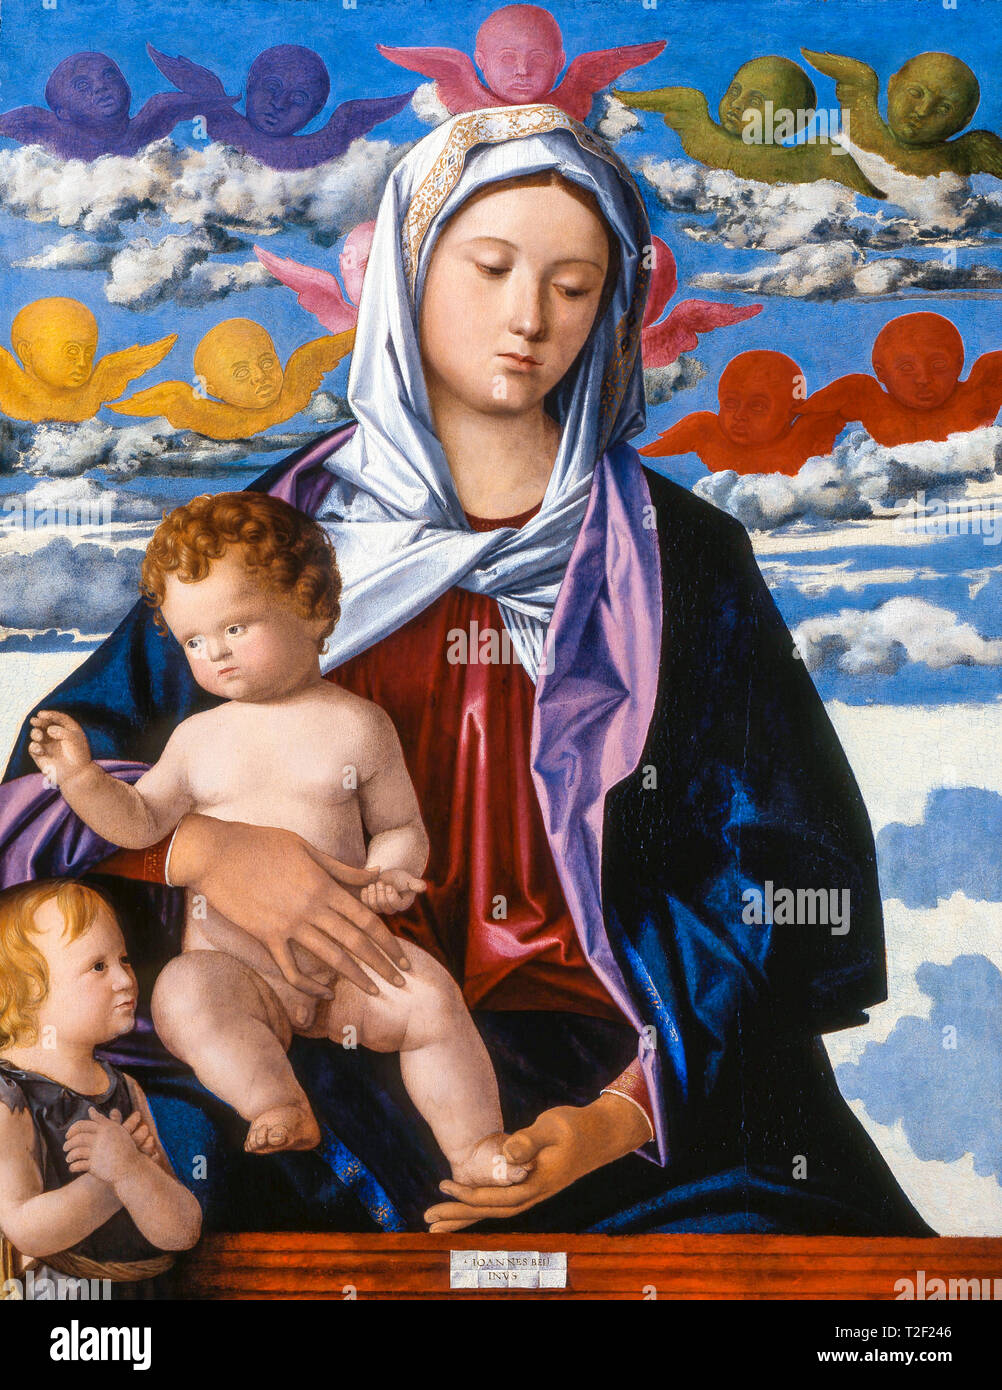 Workshop of Giovanni Bellini, Madonna and Child with St. John the Baptist, painting, c. 1490 - Stock Image